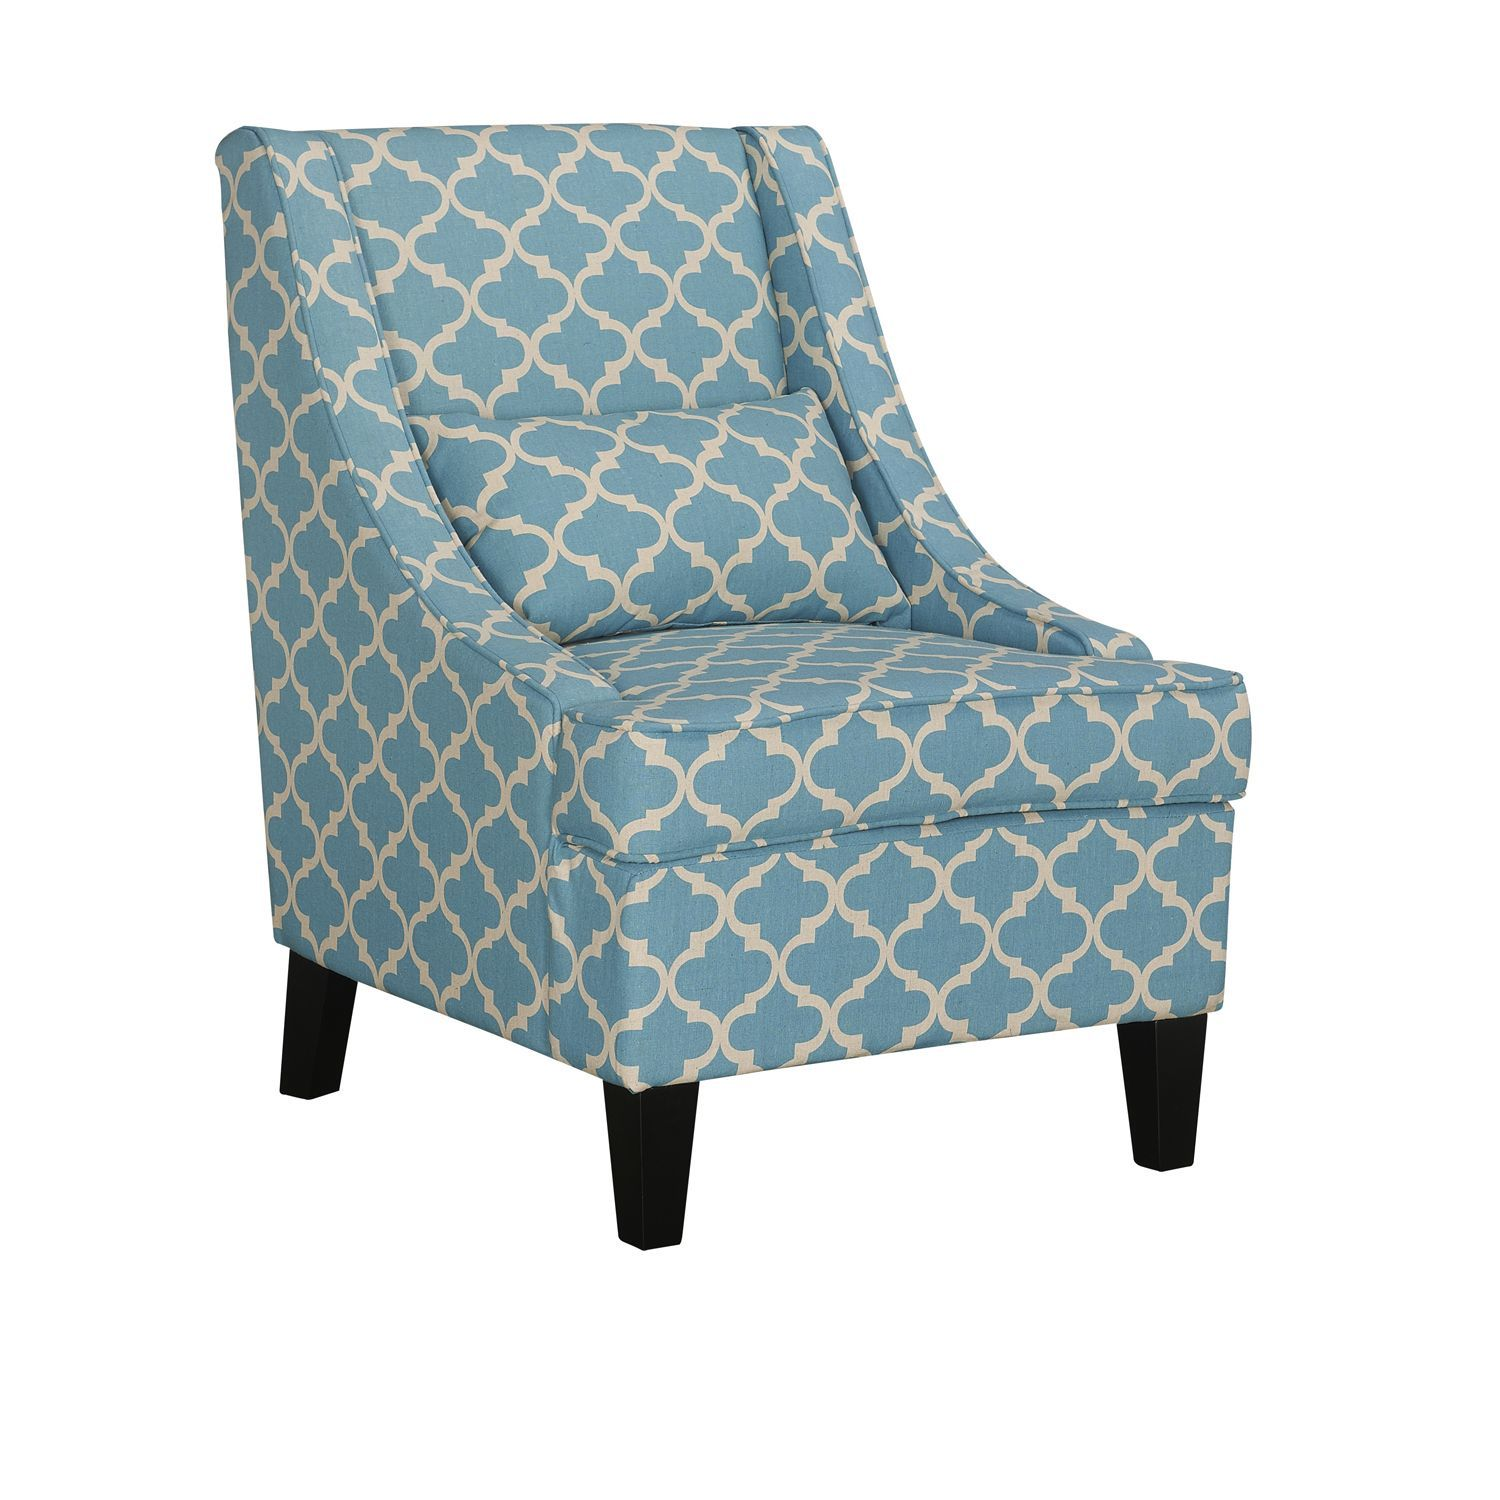 Ordinaire Baxton Studio Asplin Contemporary Patterned Upholstered Armchair